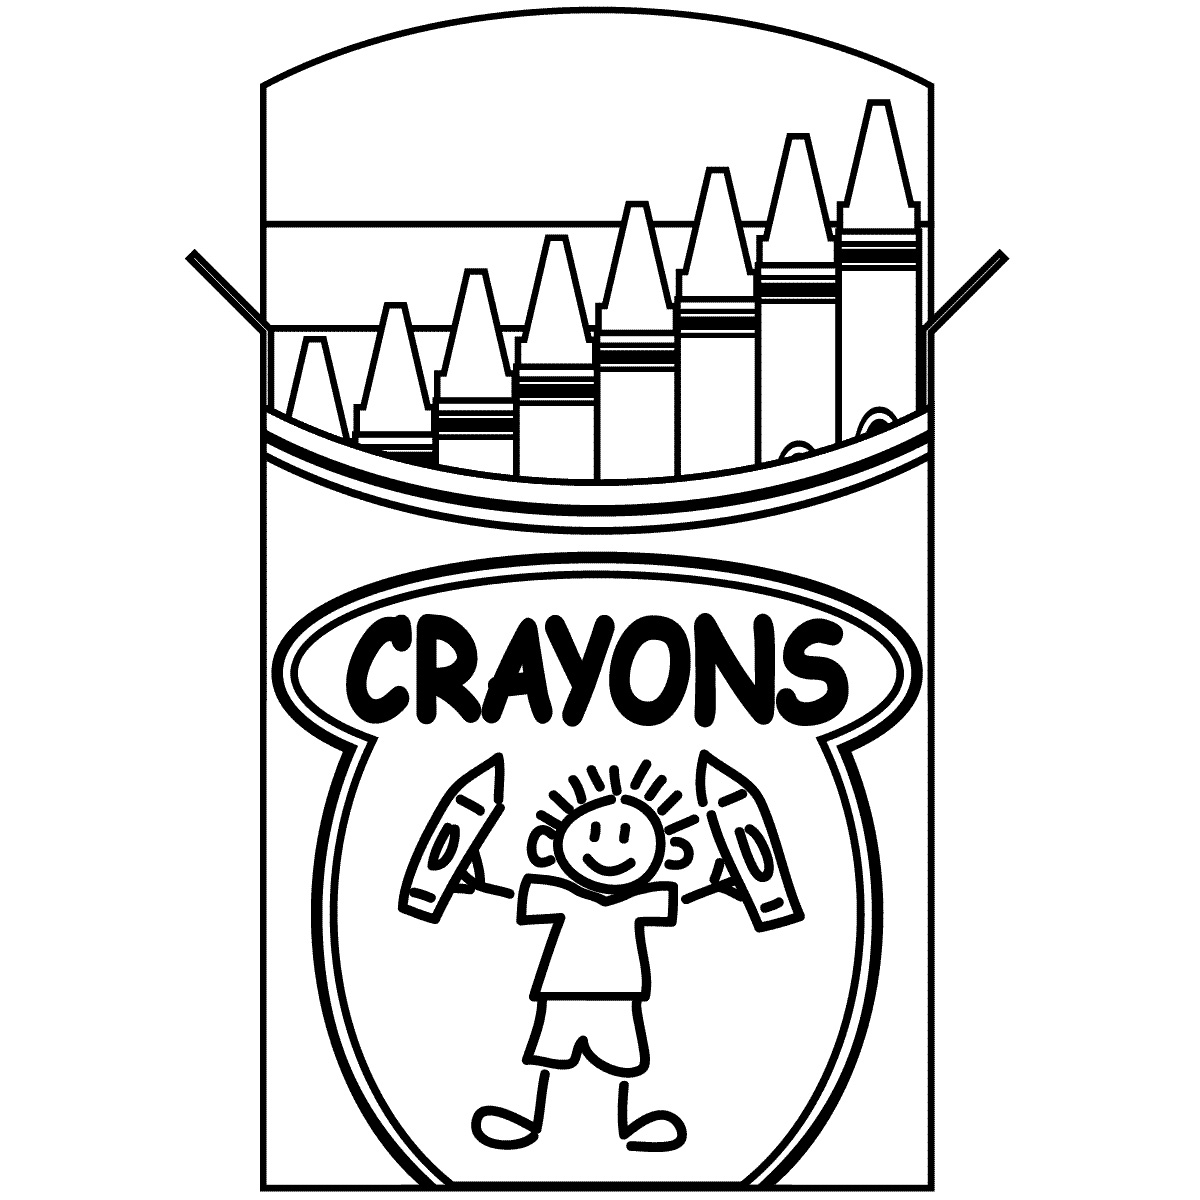 coloring with crayola markers crayola markers drawing at getdrawings free download markers crayola coloring with